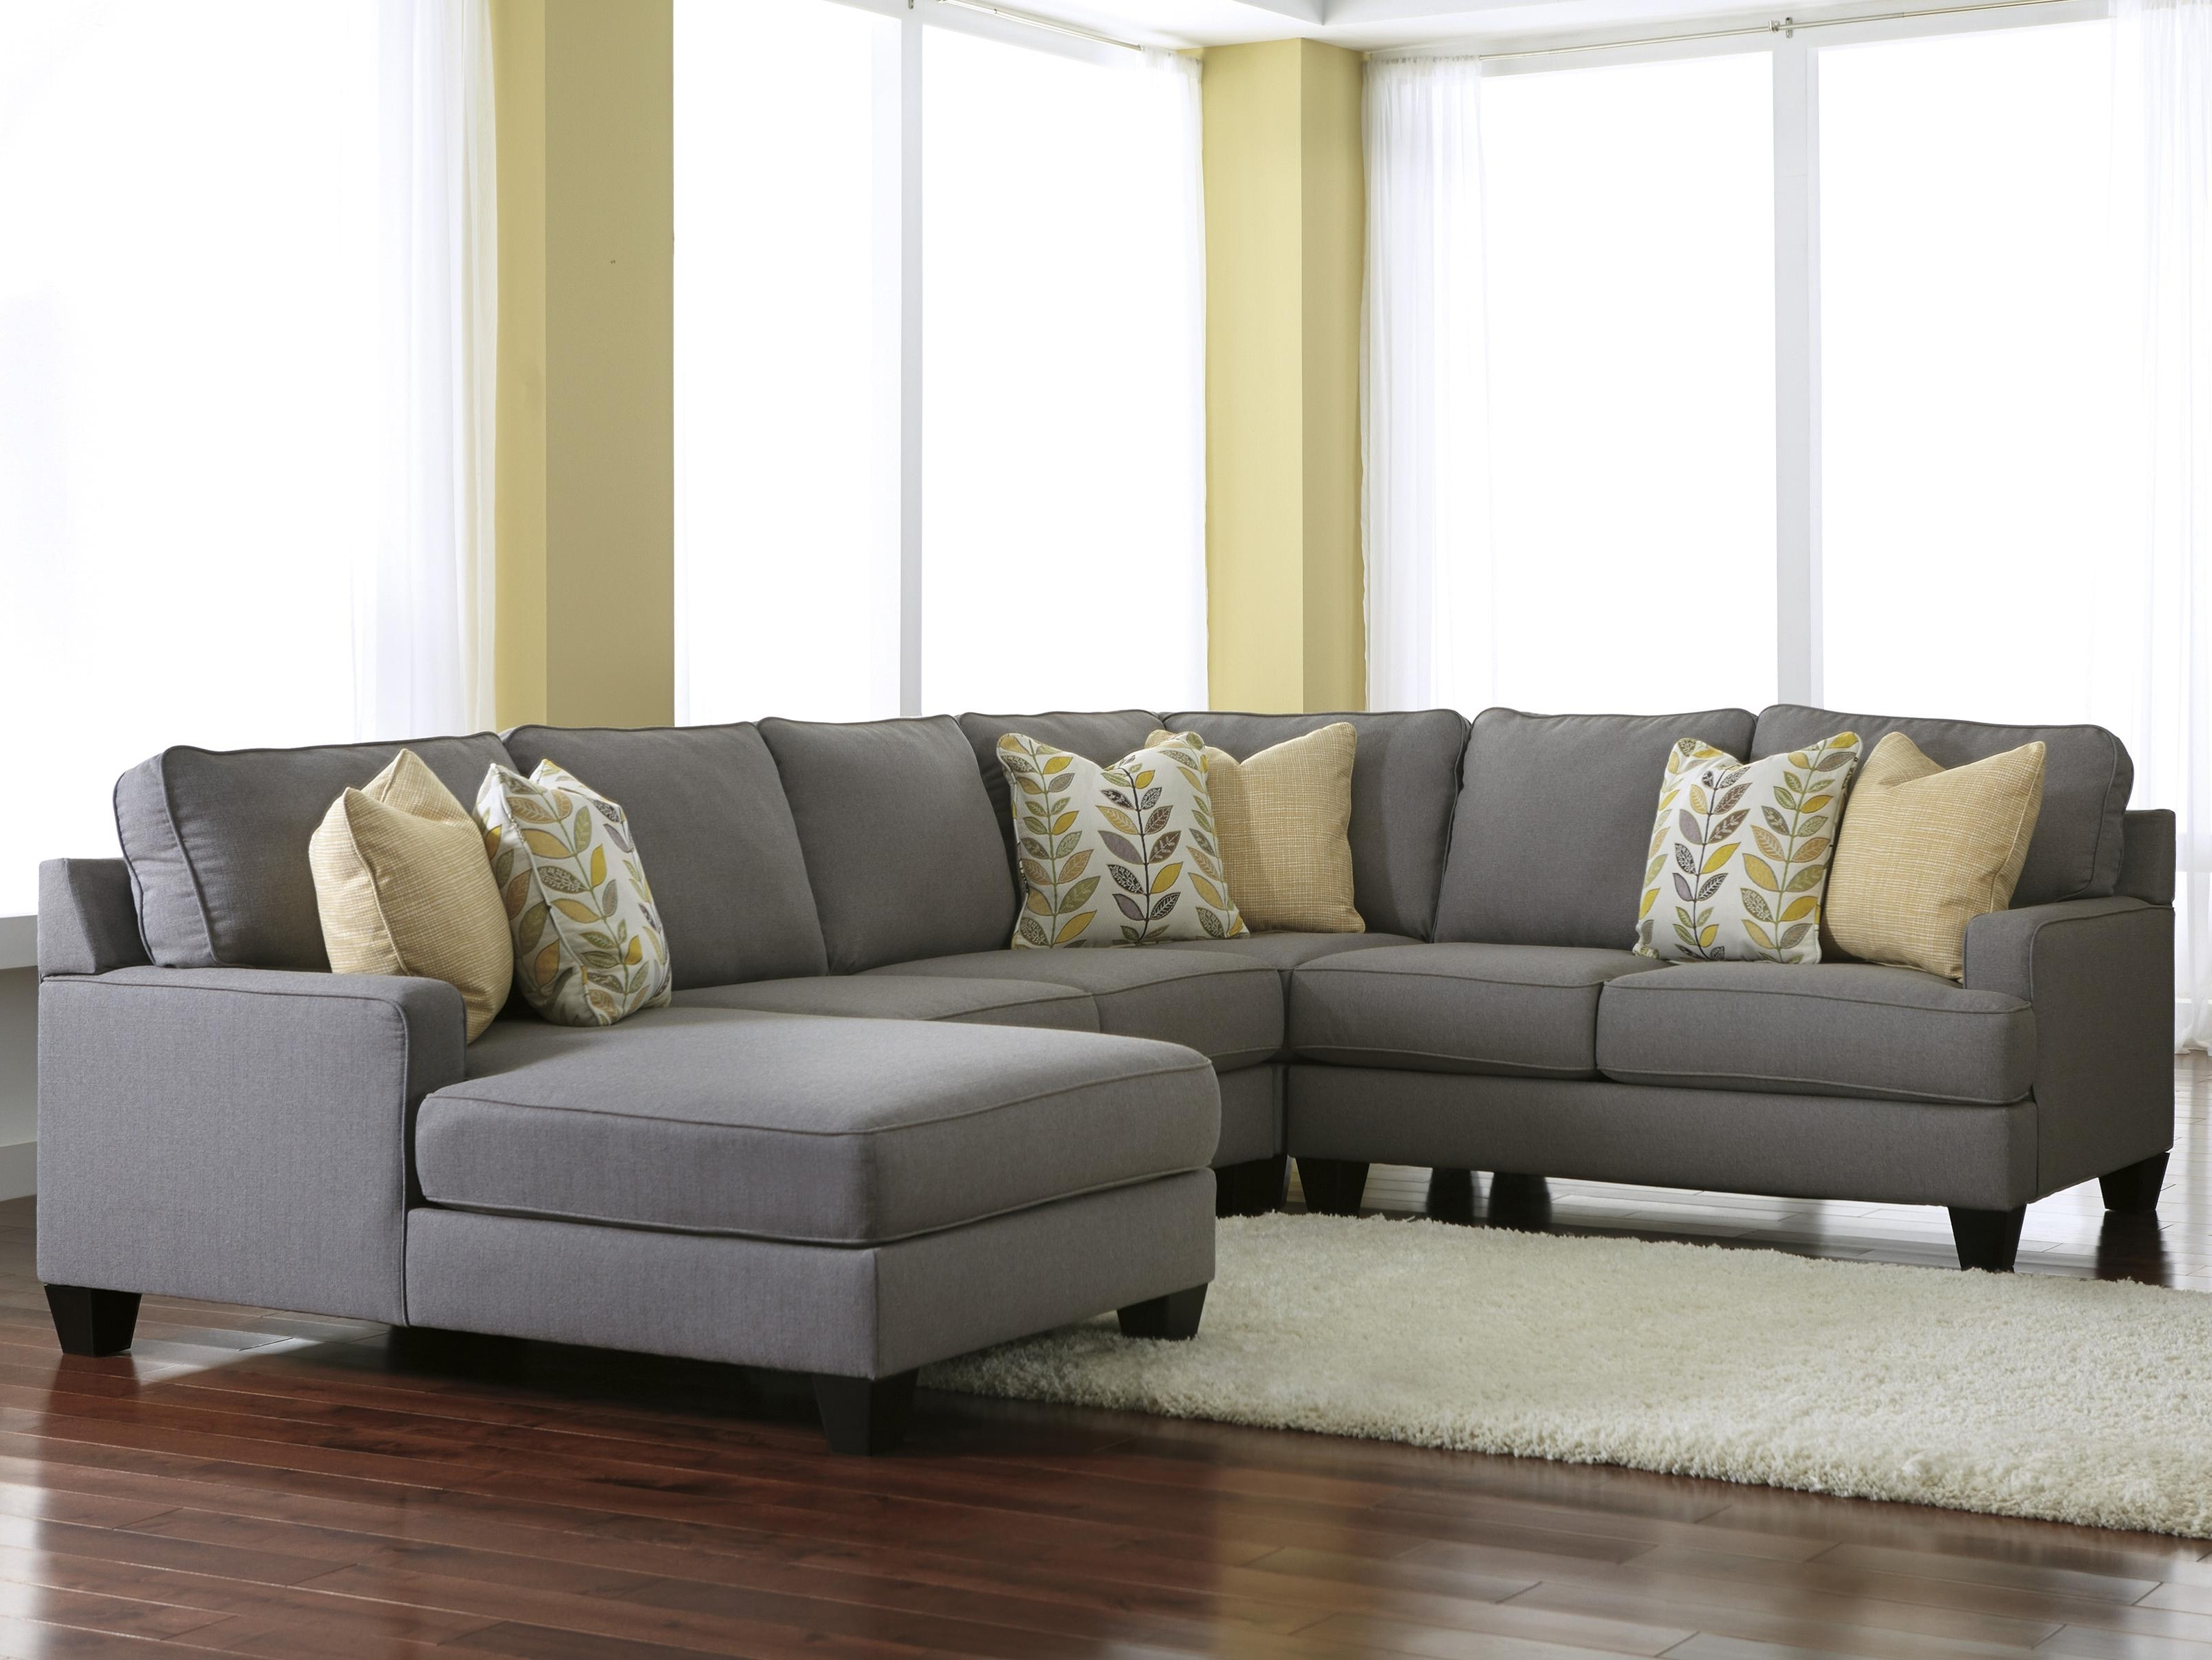 Trendy Signature Designashley Chamberly – Alloy Modern 4 Piece In 3 Piece Sectional Sofas With Chaise (View 13 of 15)